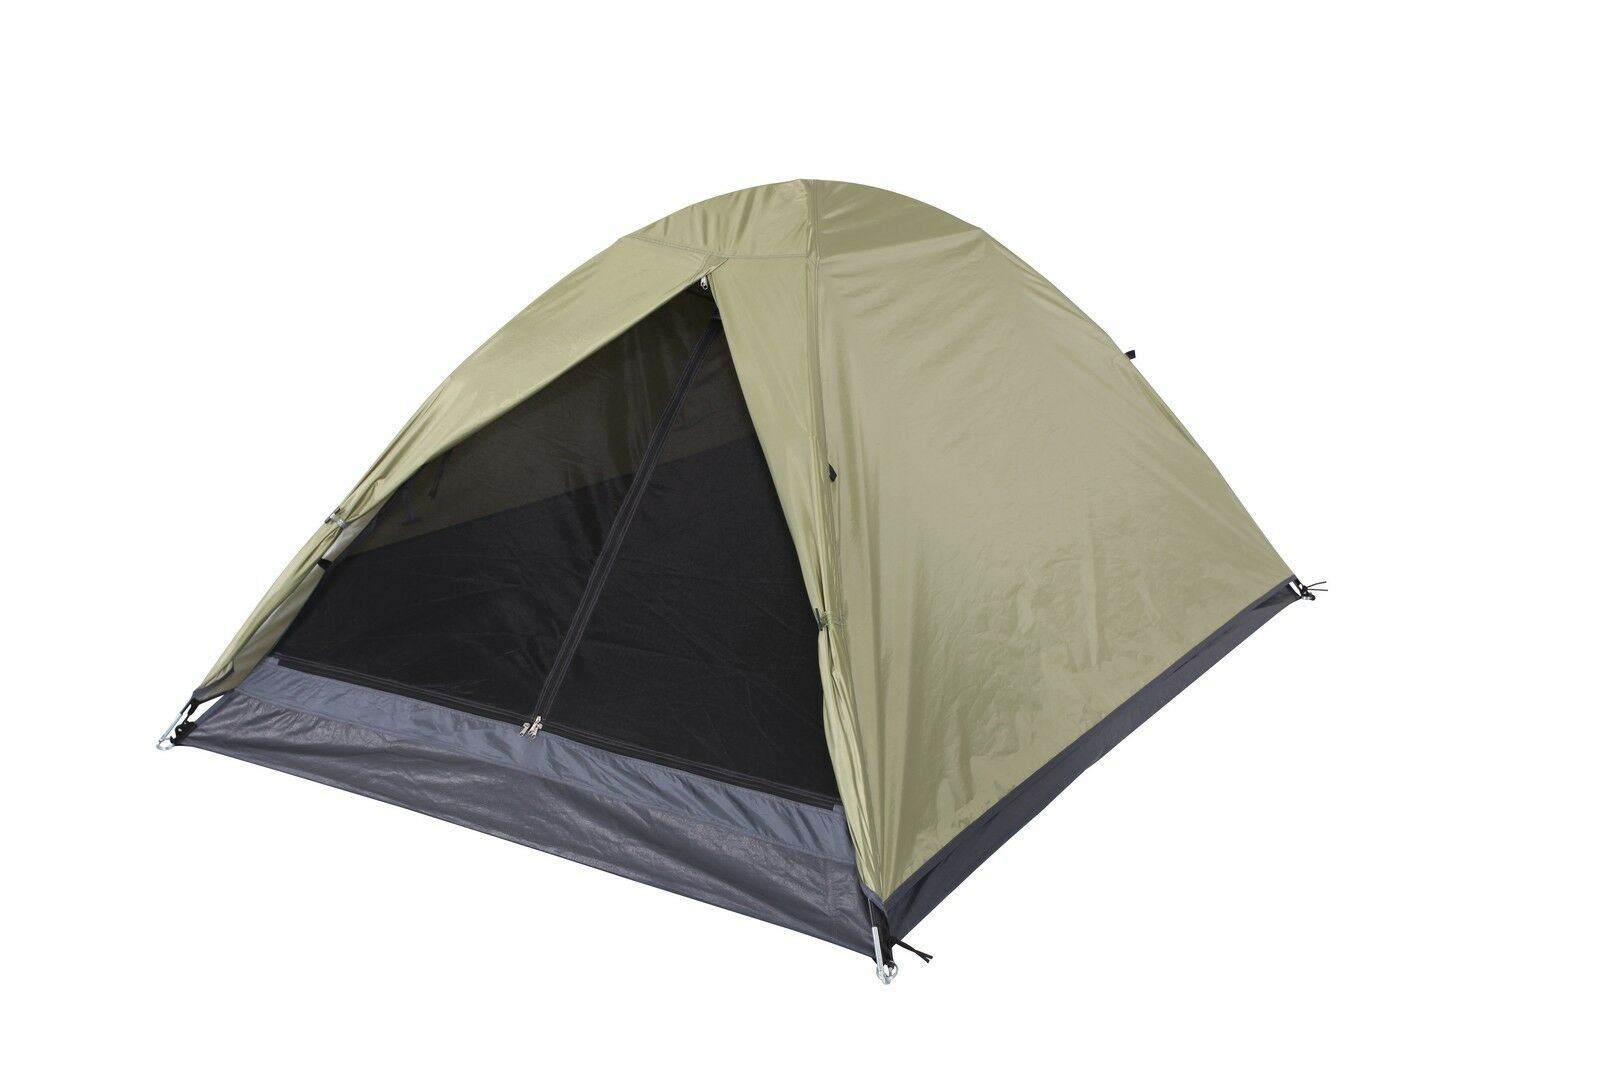 Oztrail Festival 2P Lightweight Dome campeggio Hire Tent with Waterproof Barrier